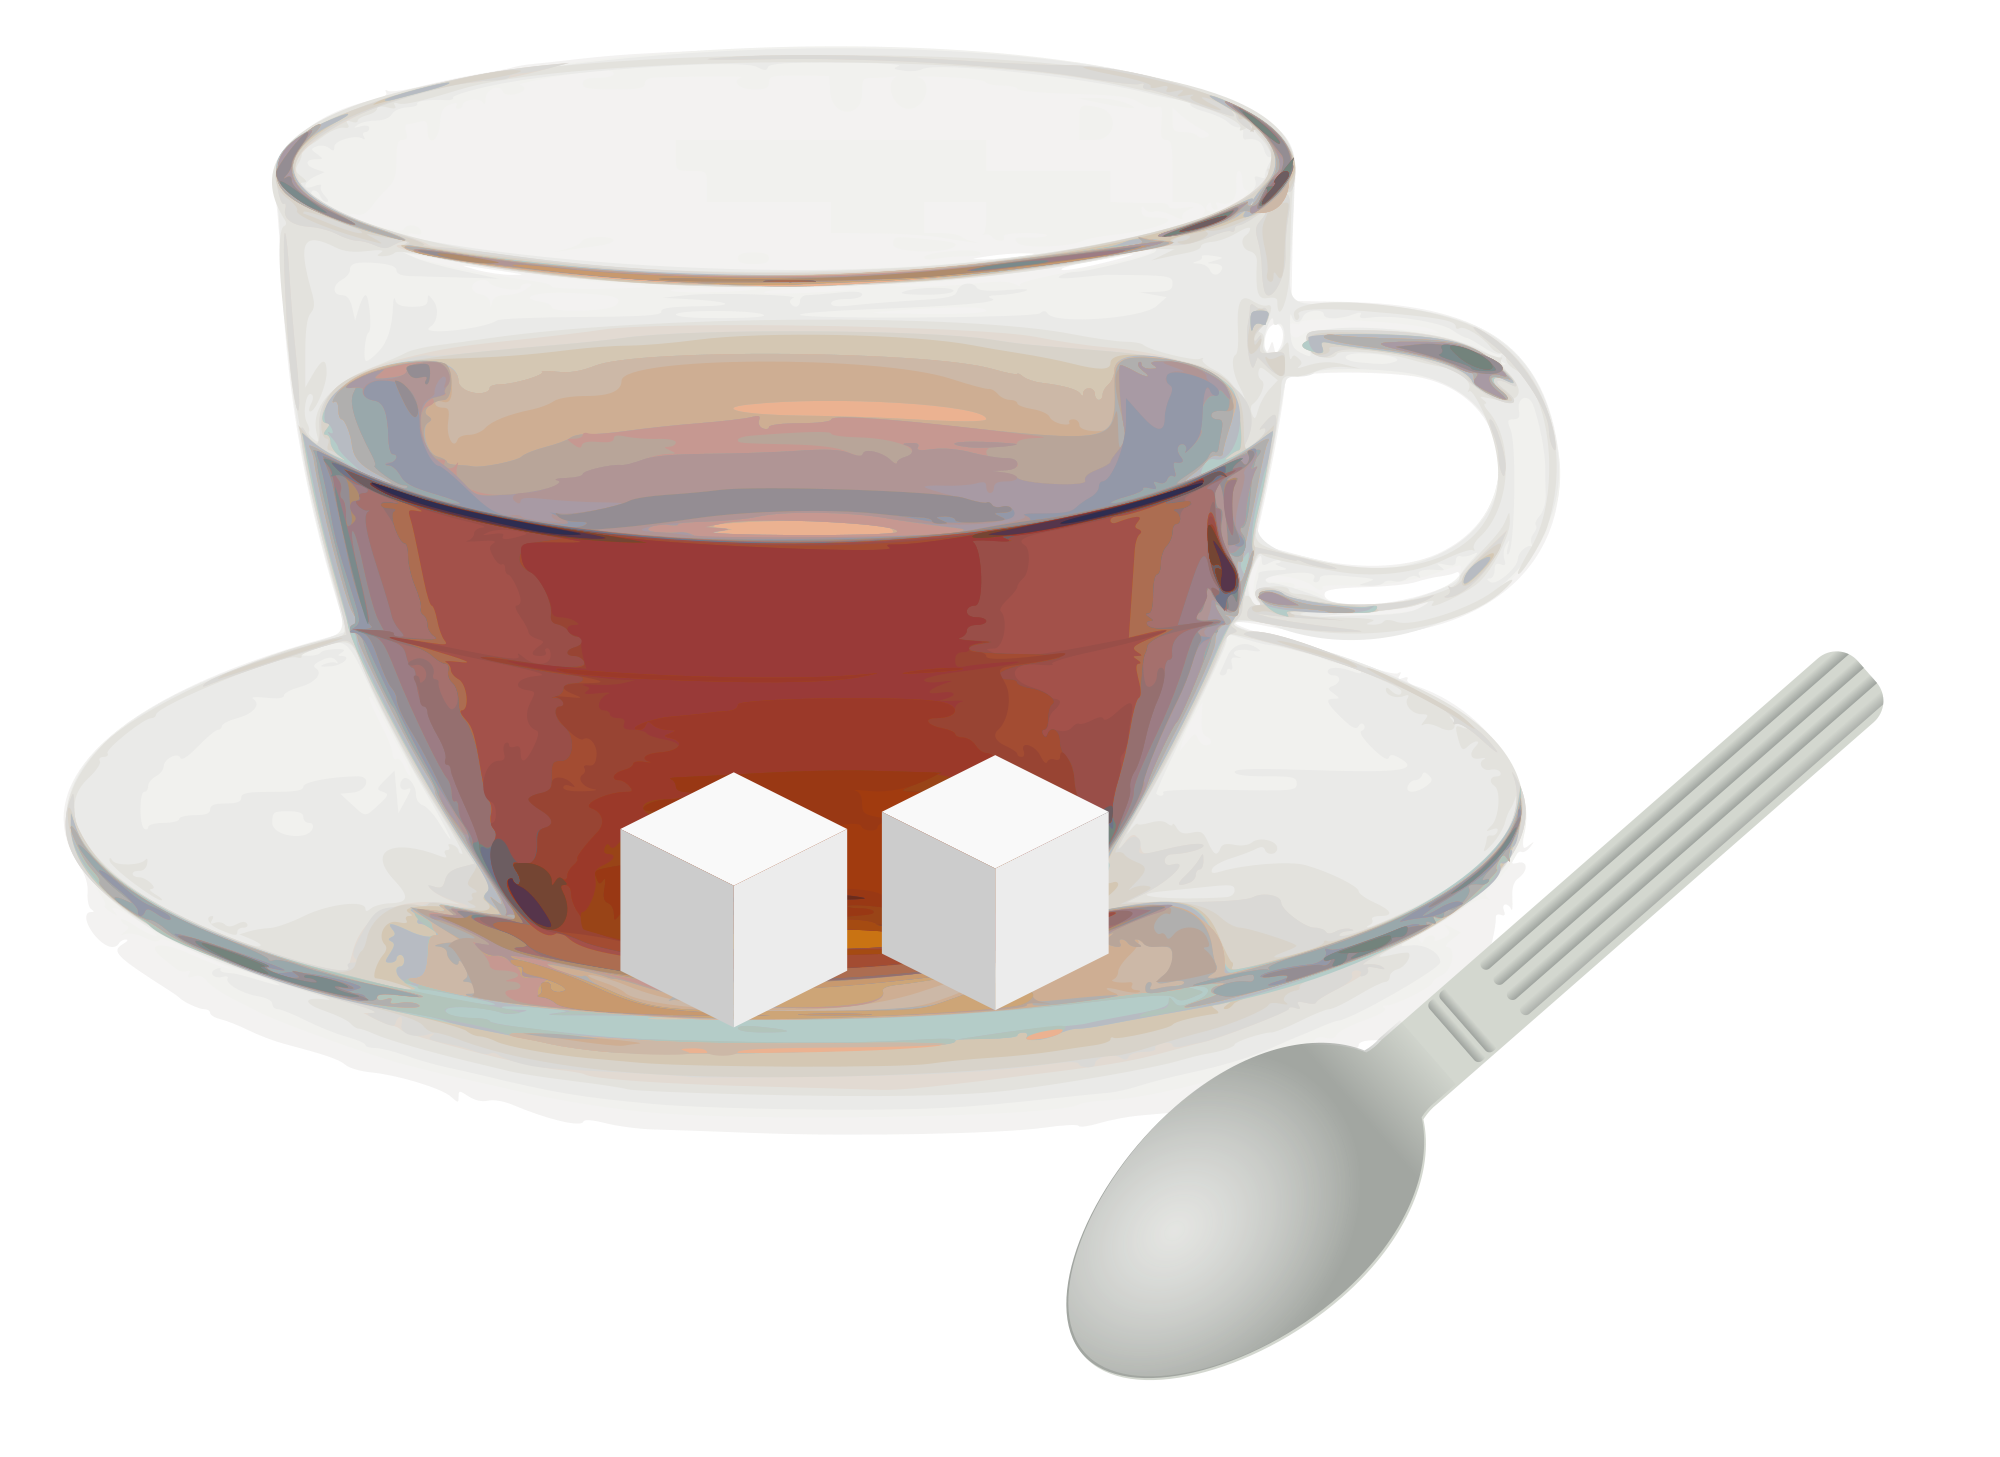 File glass with saucer. Cup clipart 3 cup